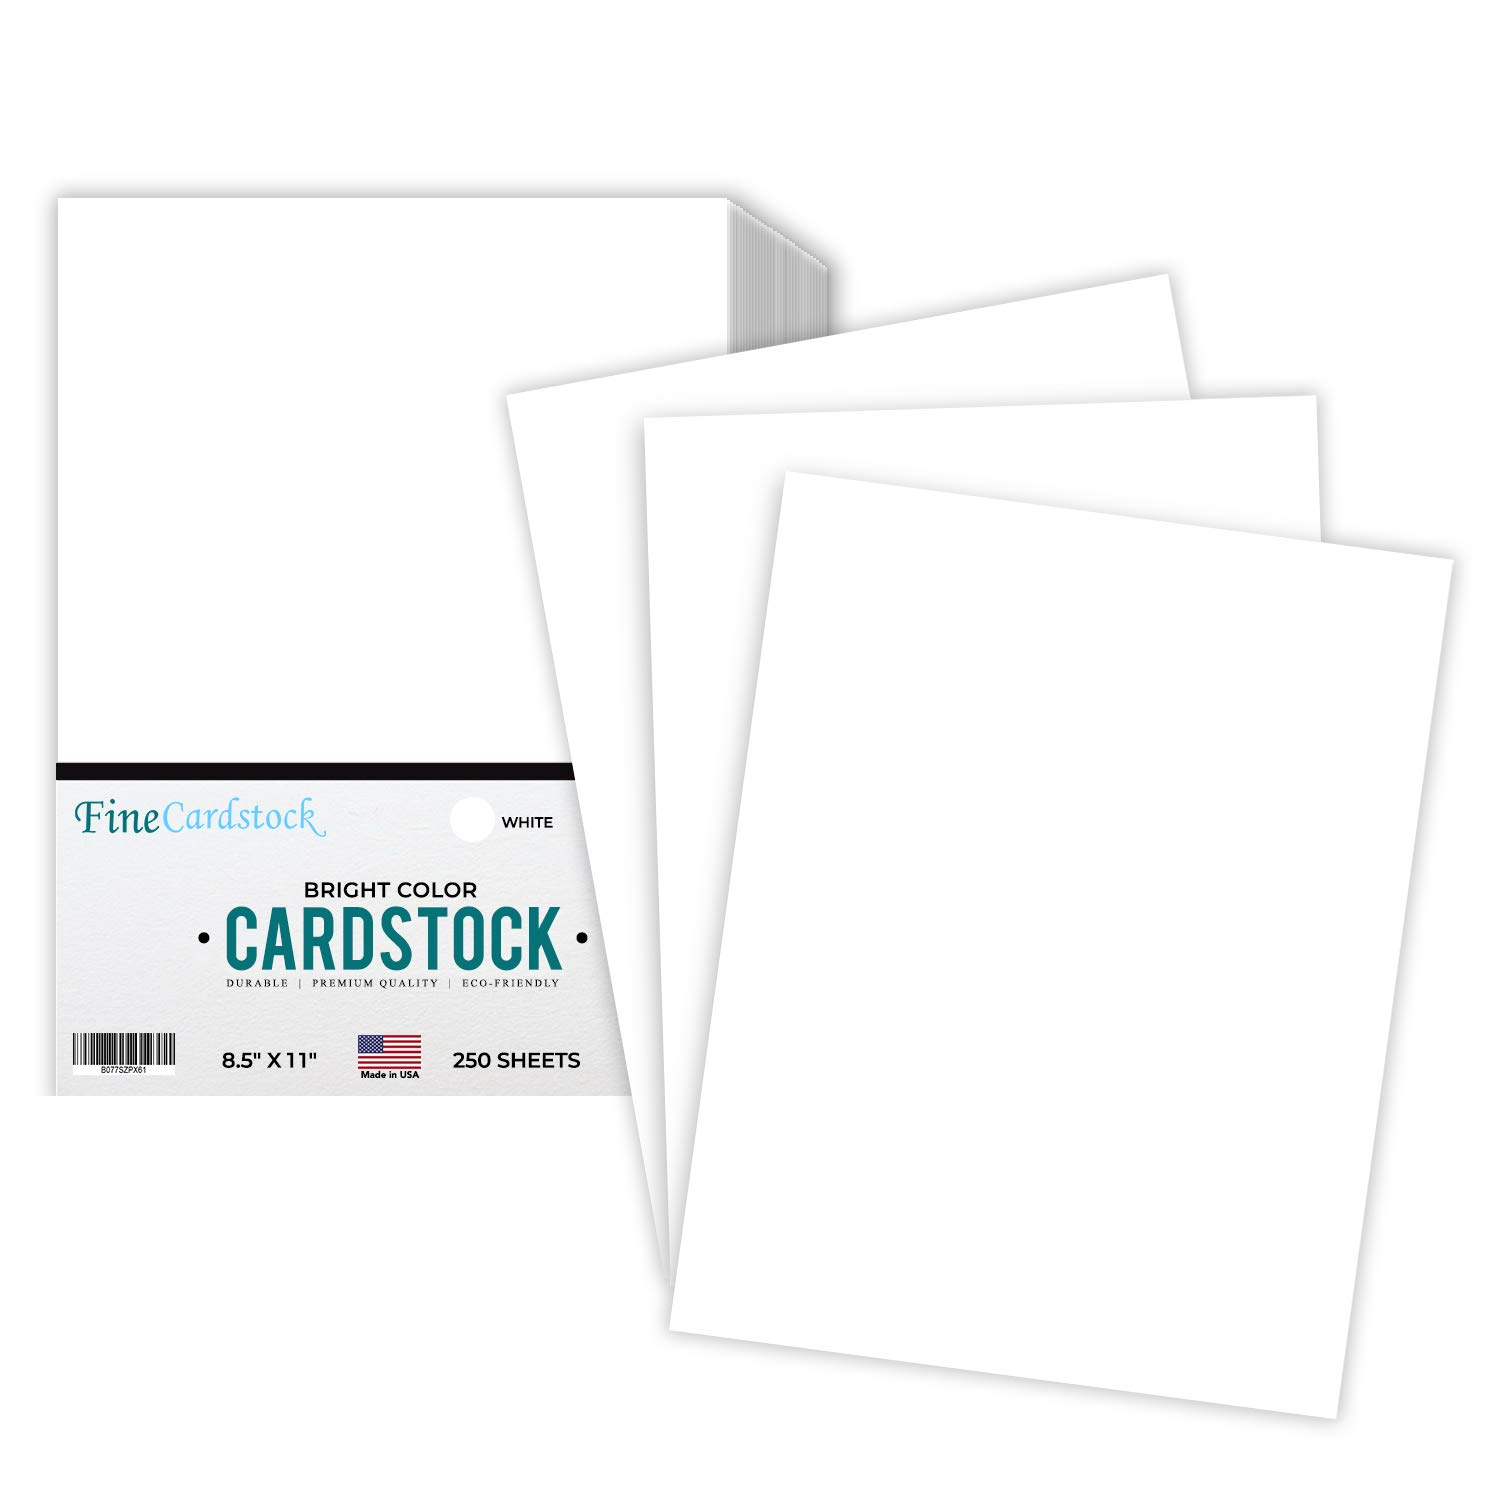 Premium Color Card Stock Paper | 250 Per Pack | Superior Thick 65-lb Cardstock, Perfect for School Supplies, Holiday Crafting, Arts and Crafts | Acid & Lignin Free | Bright White | 8.5 x 11 by S Superfine Printing